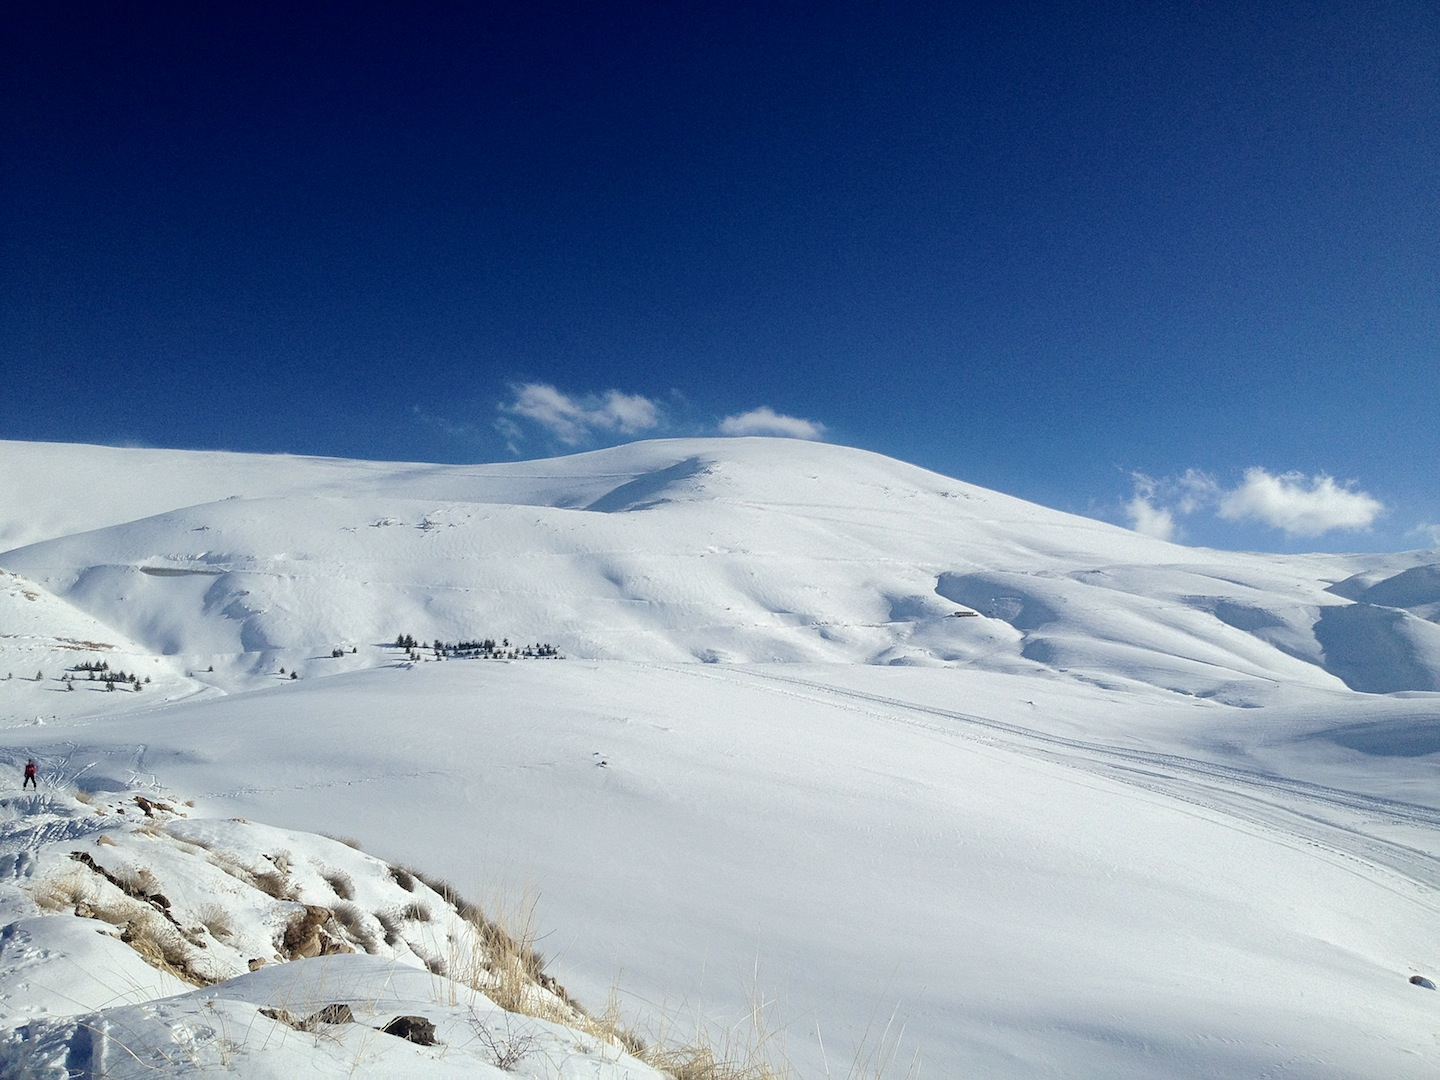 Winter in Lebanon: The Cedars | A Separate State of Mind ...